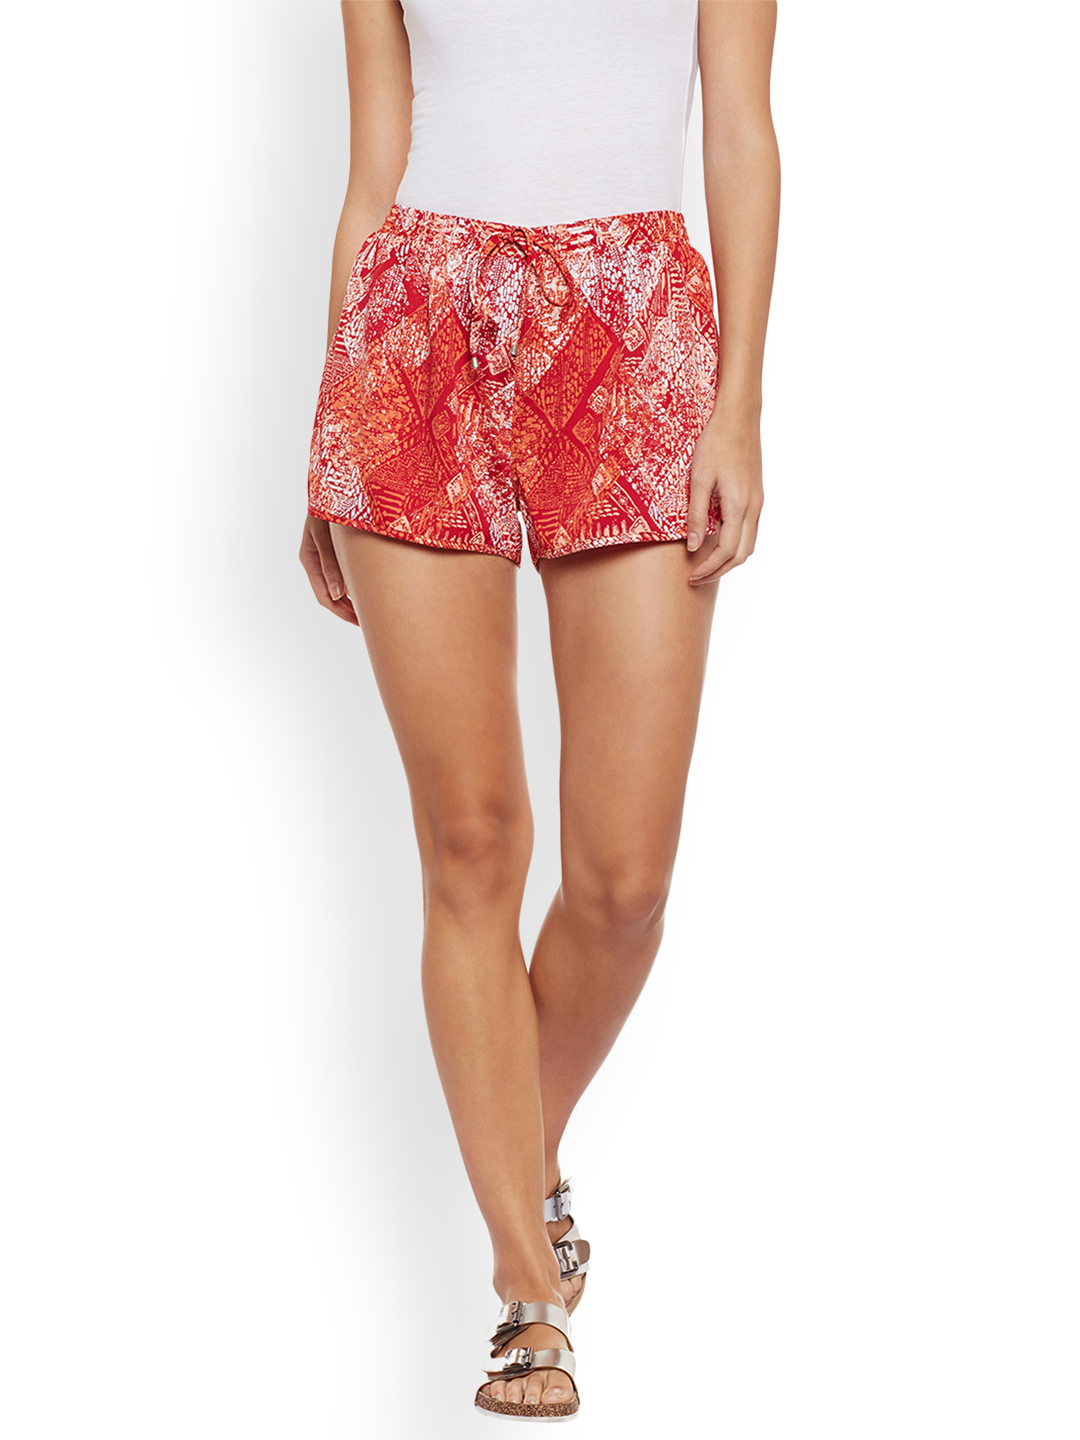 WISSTLER Women Red & White Printed Regular Fit Sports Shorts Price in India